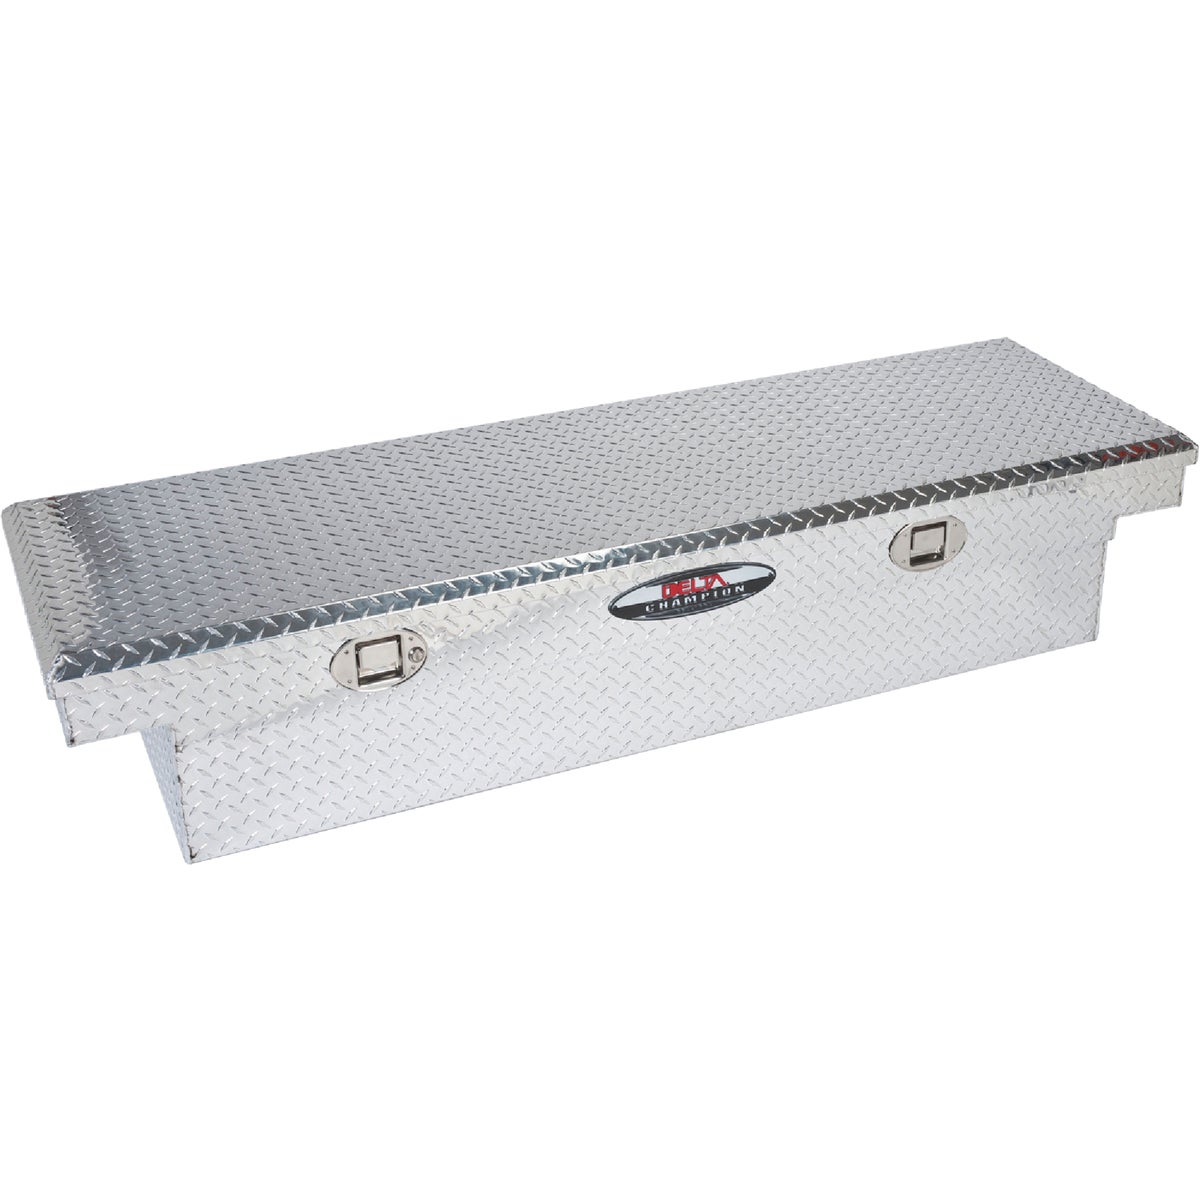 ALUM FULLSIZE TRUCK BOX - 1-232000 by Delta Consolidated